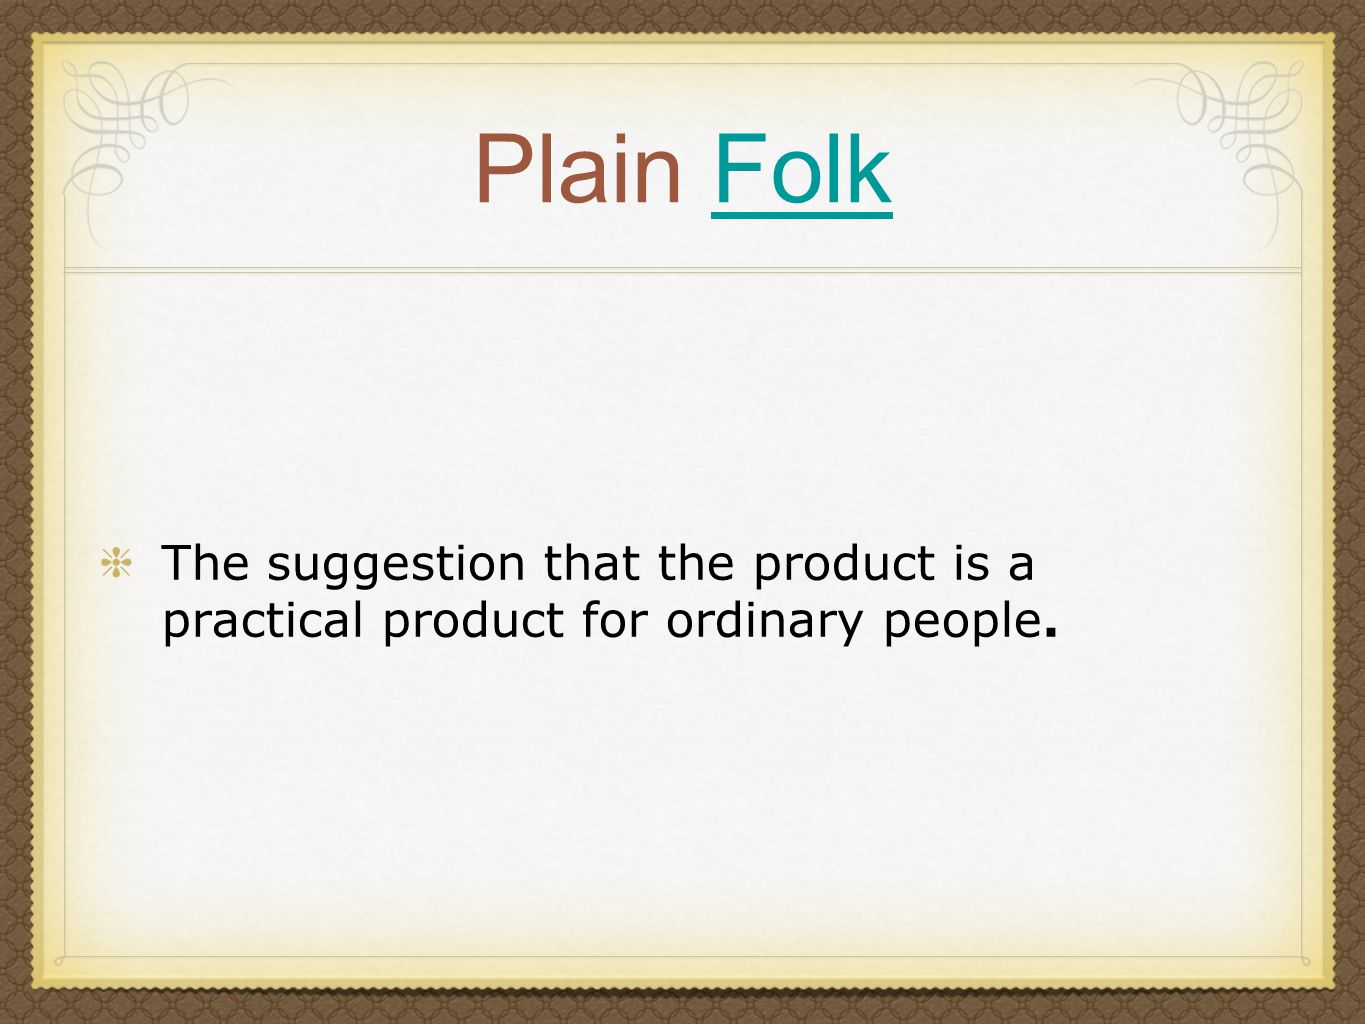 Plain FolkFolk The suggestion that the product is a practical product for ordinary people.